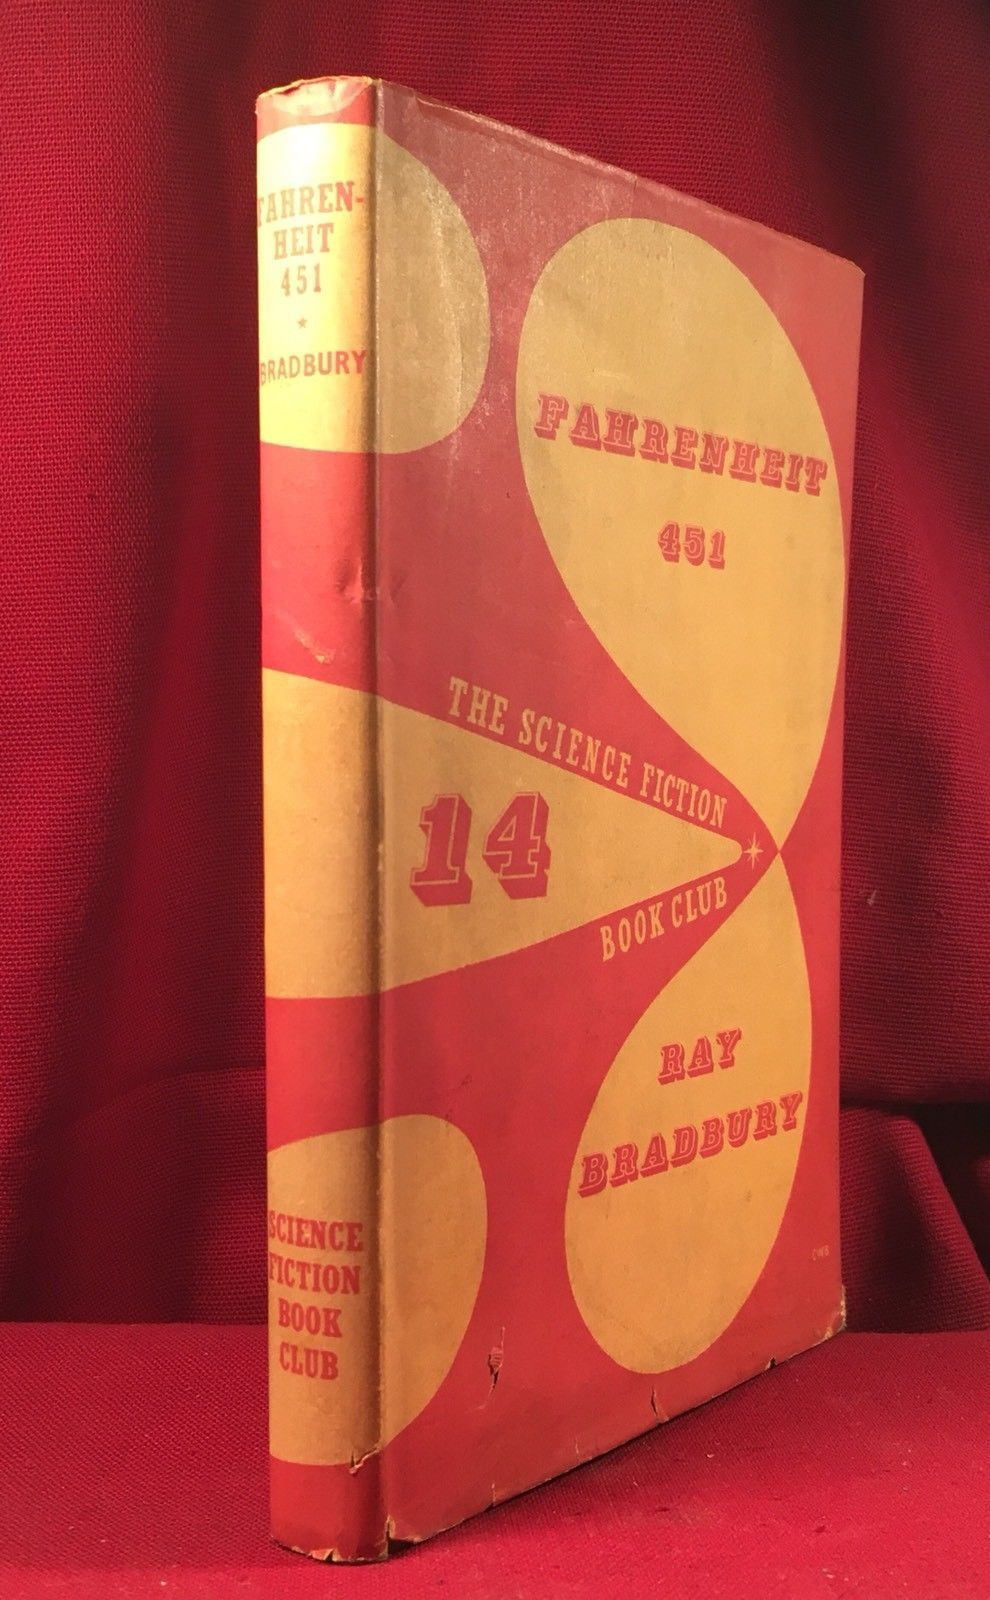 Ray Bradbury - Fahrenheit 451 - 1955 Sci Fi Book Club, early SIGNED COPY /DJ